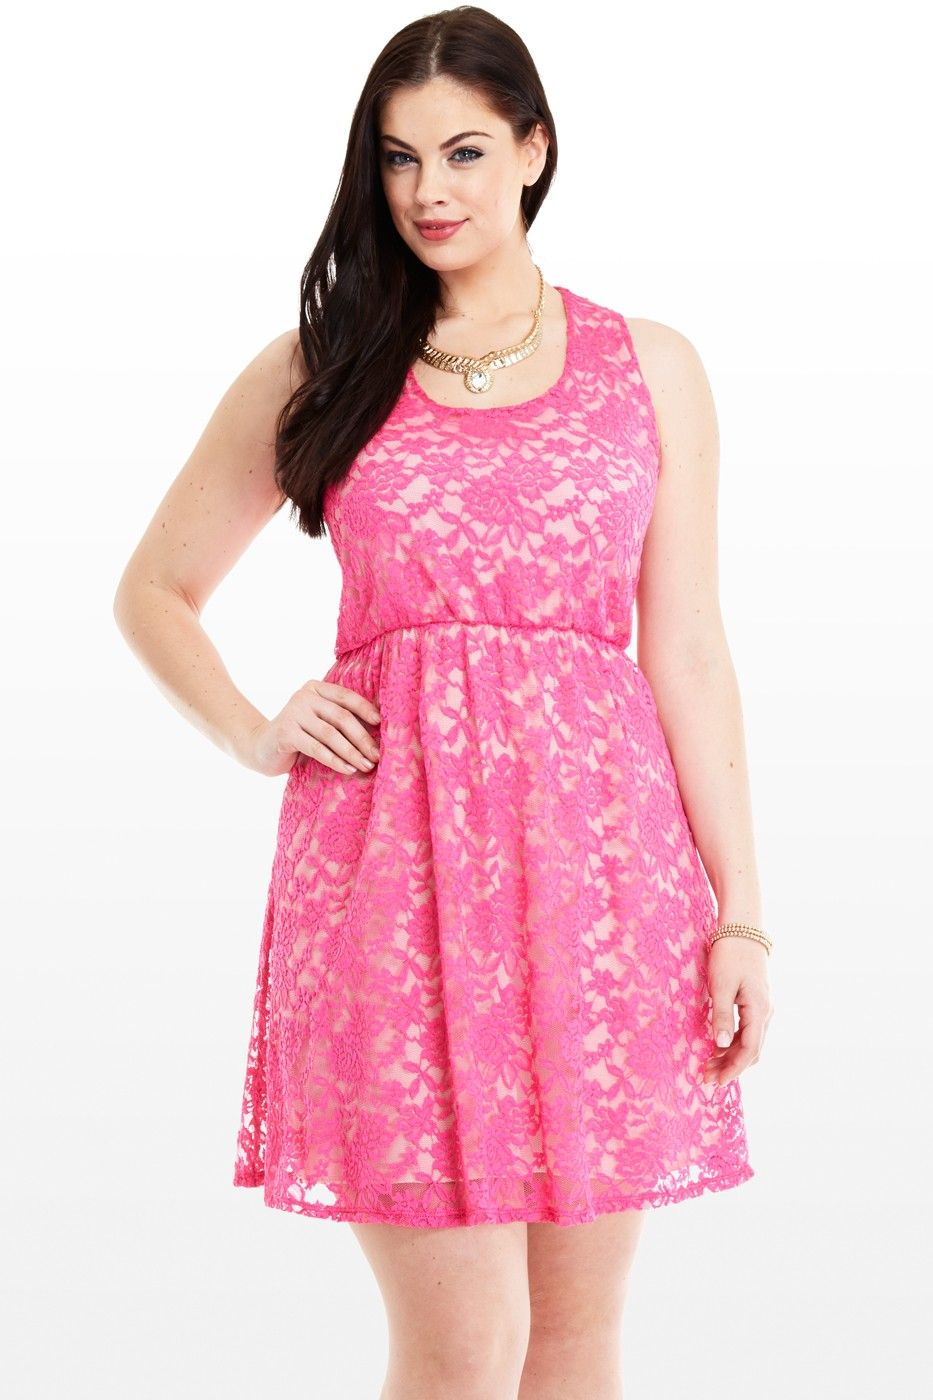 Pretty in Pink! http://www.fashiontofigure.com/catalog/new/phaedra ...